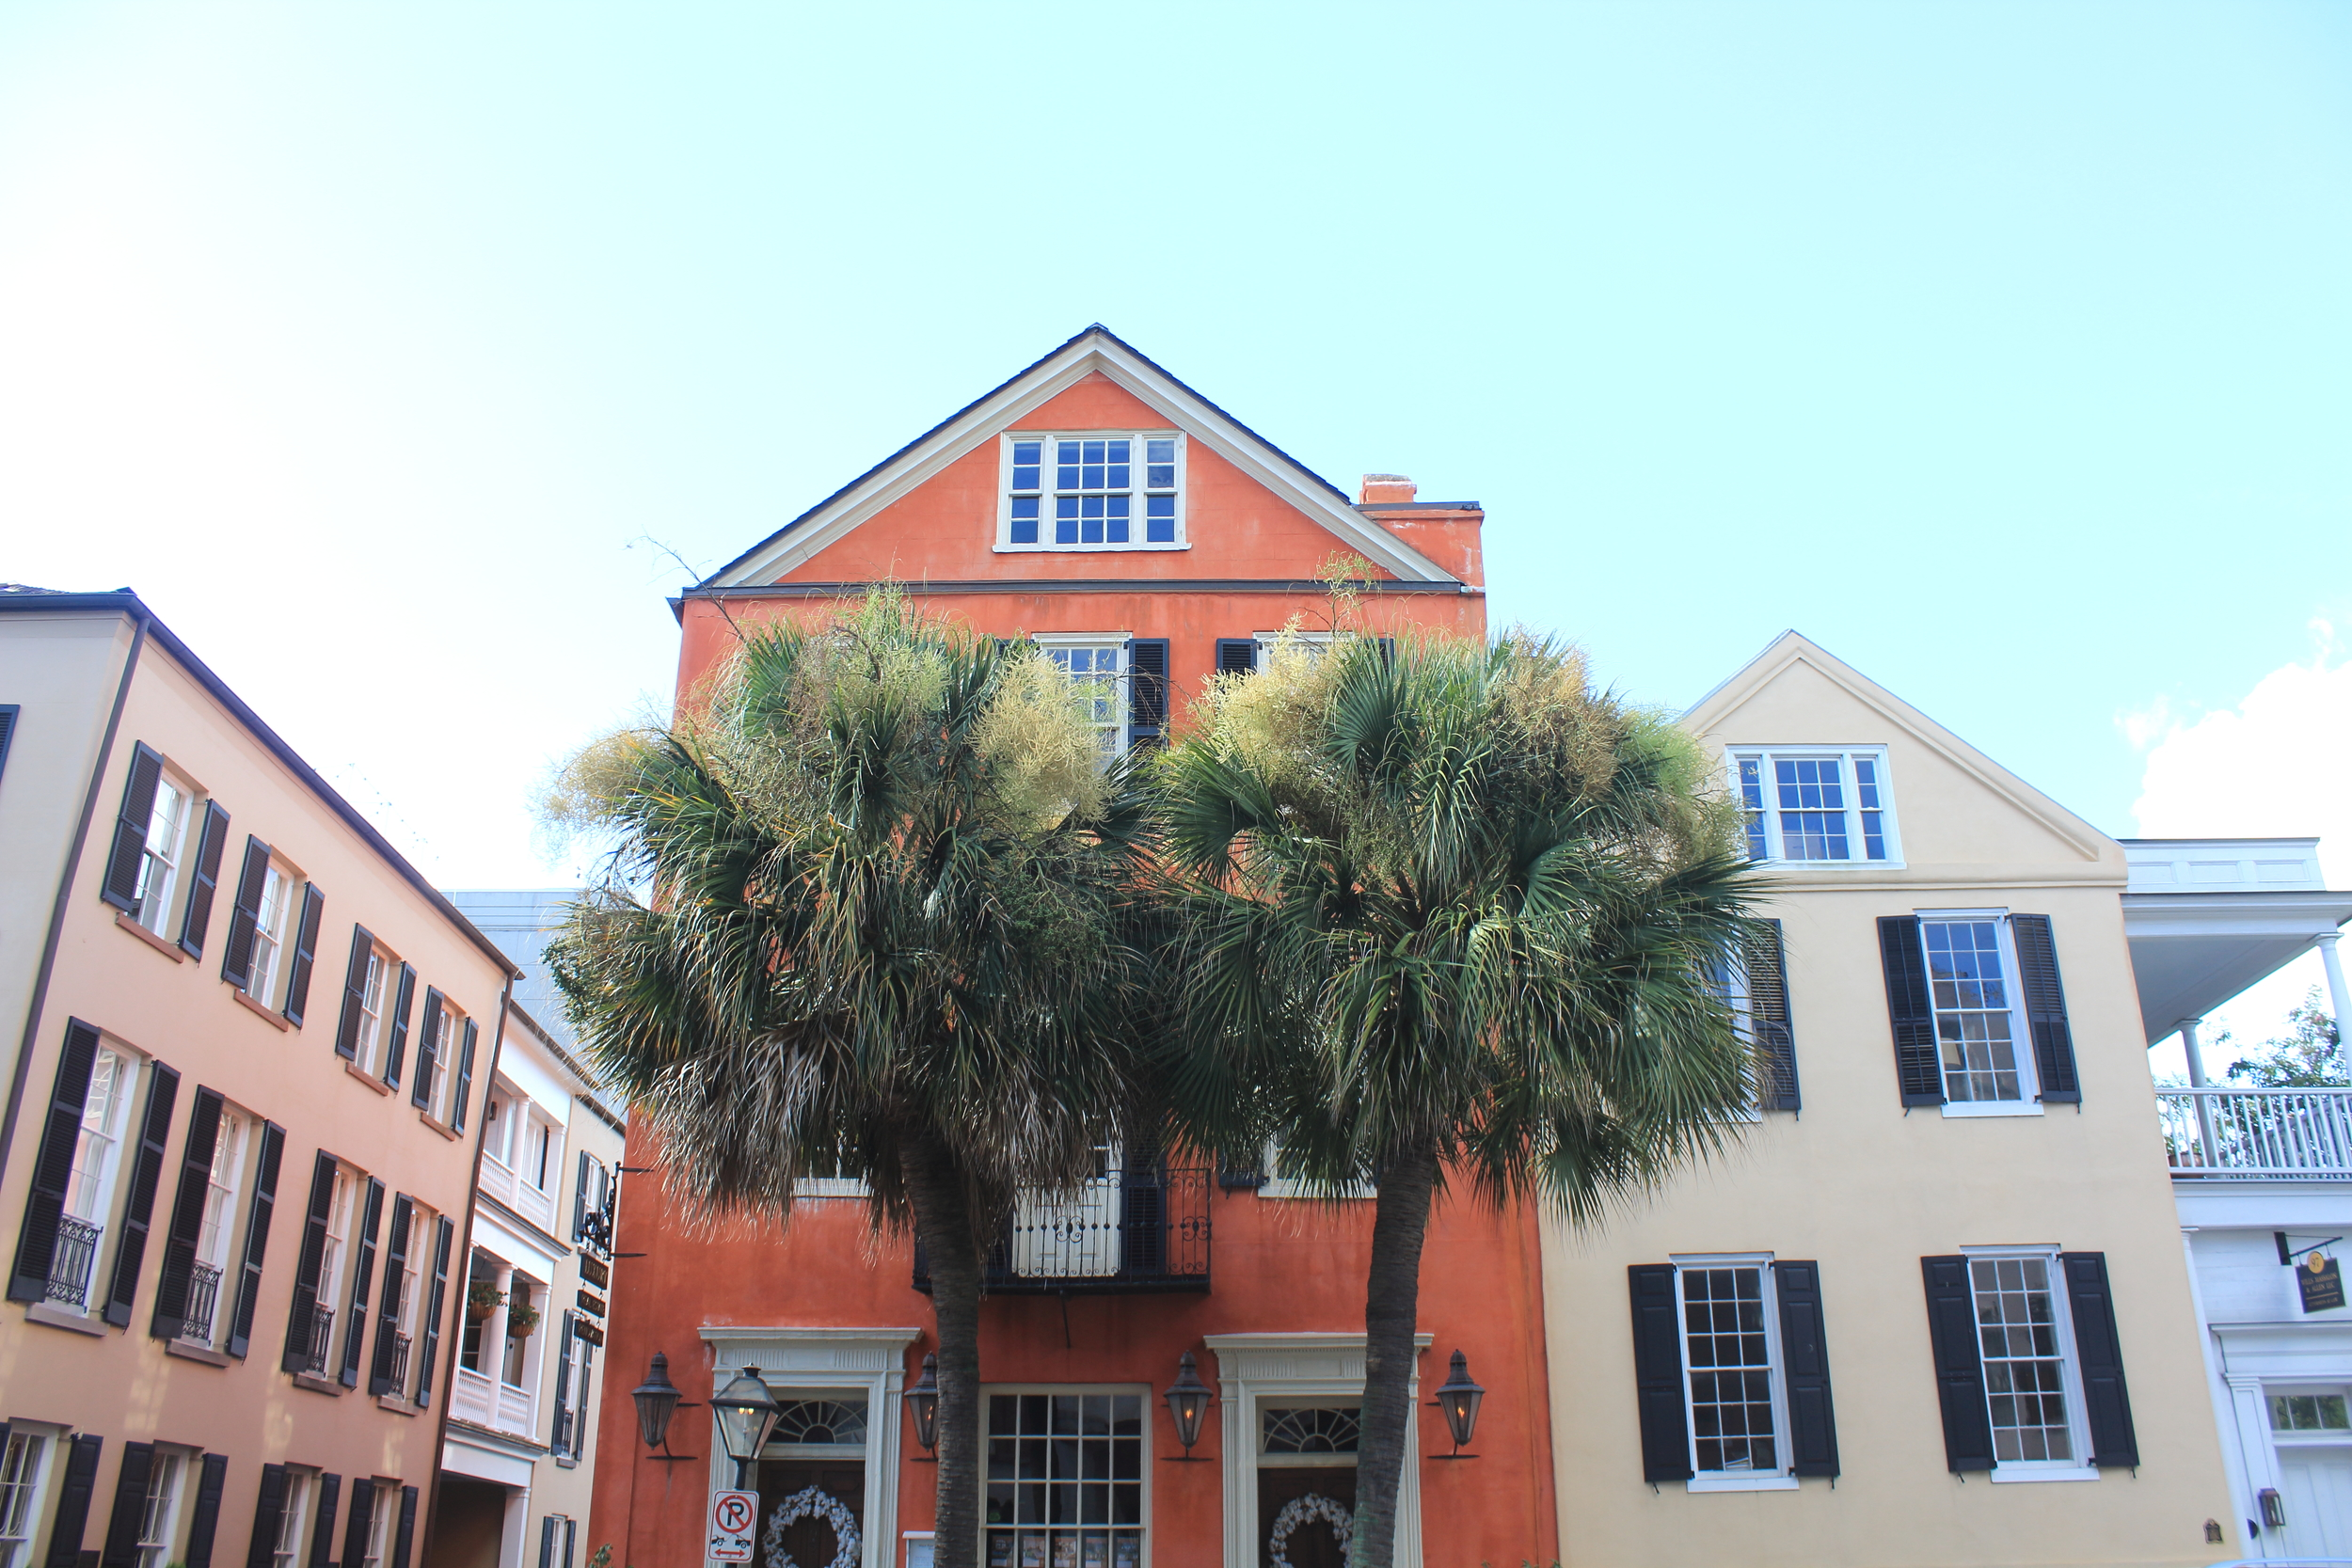 Charleston, South Carolina - voted friendliest city in the world by Conde Nast